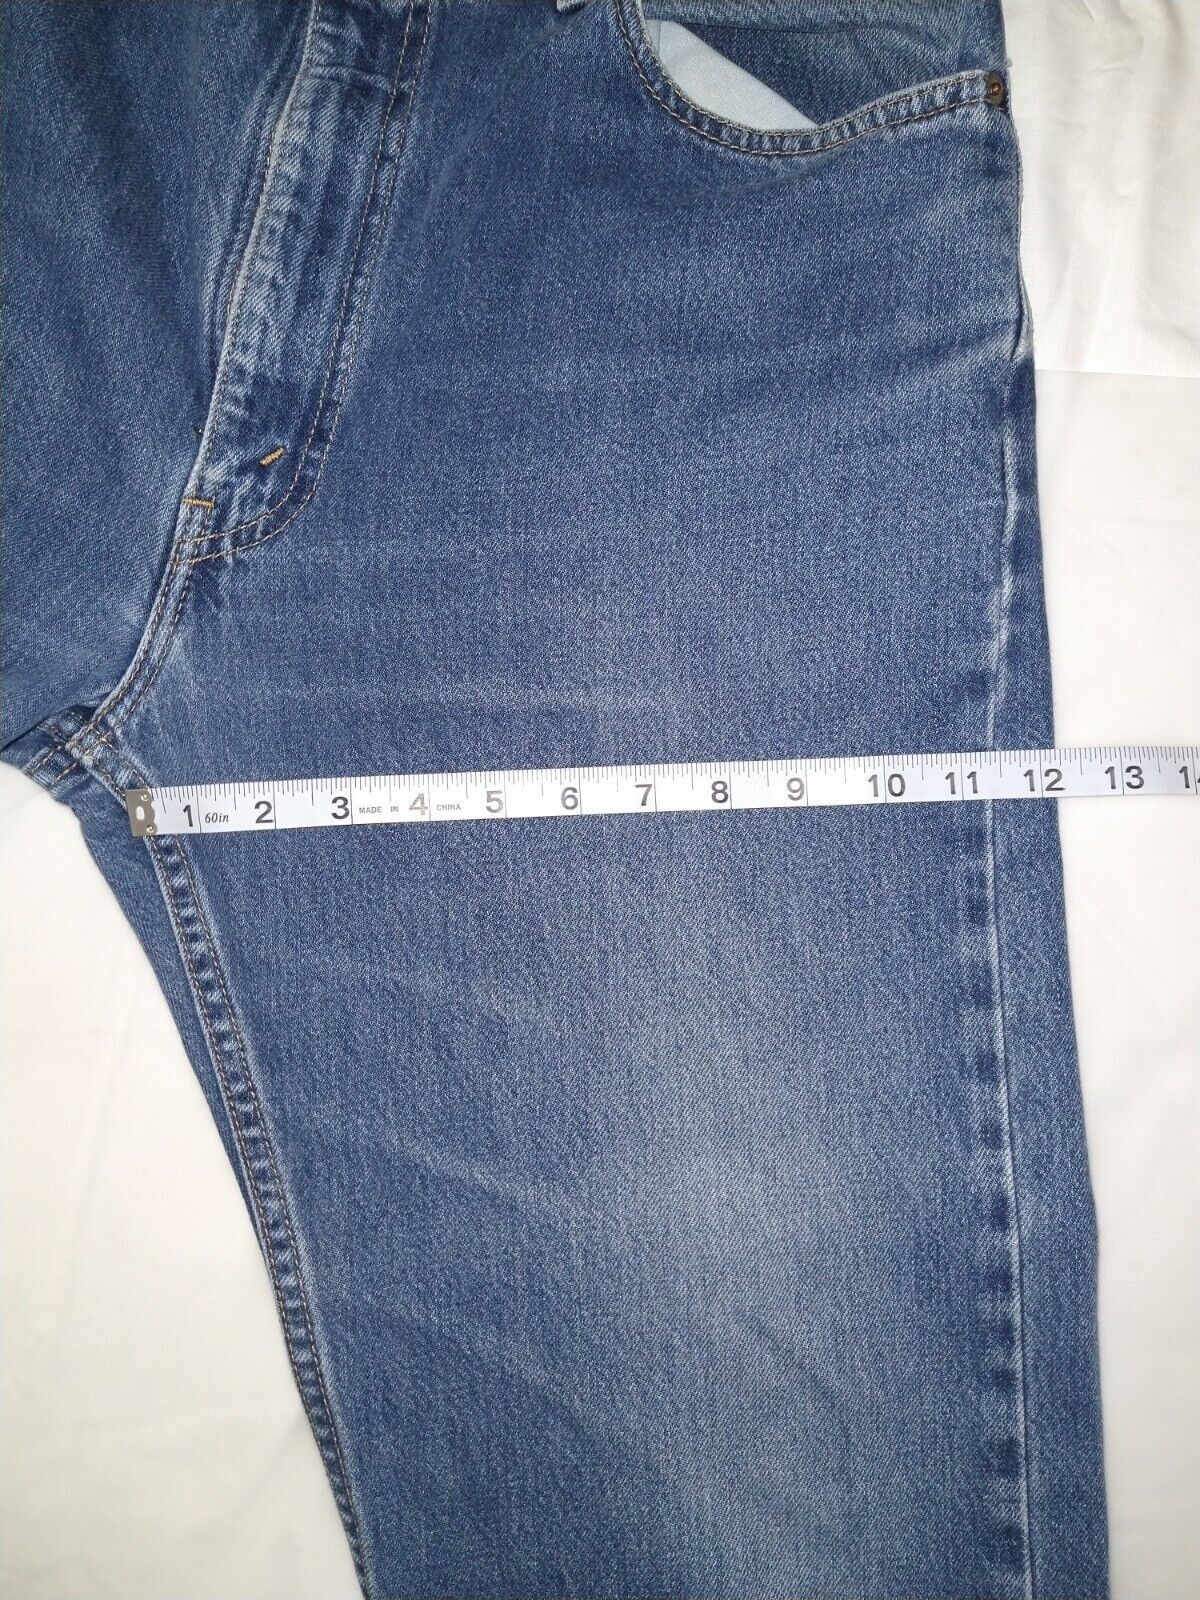 Levi's 505 Jean's Made in the USA Men's size 36x3… - image 7